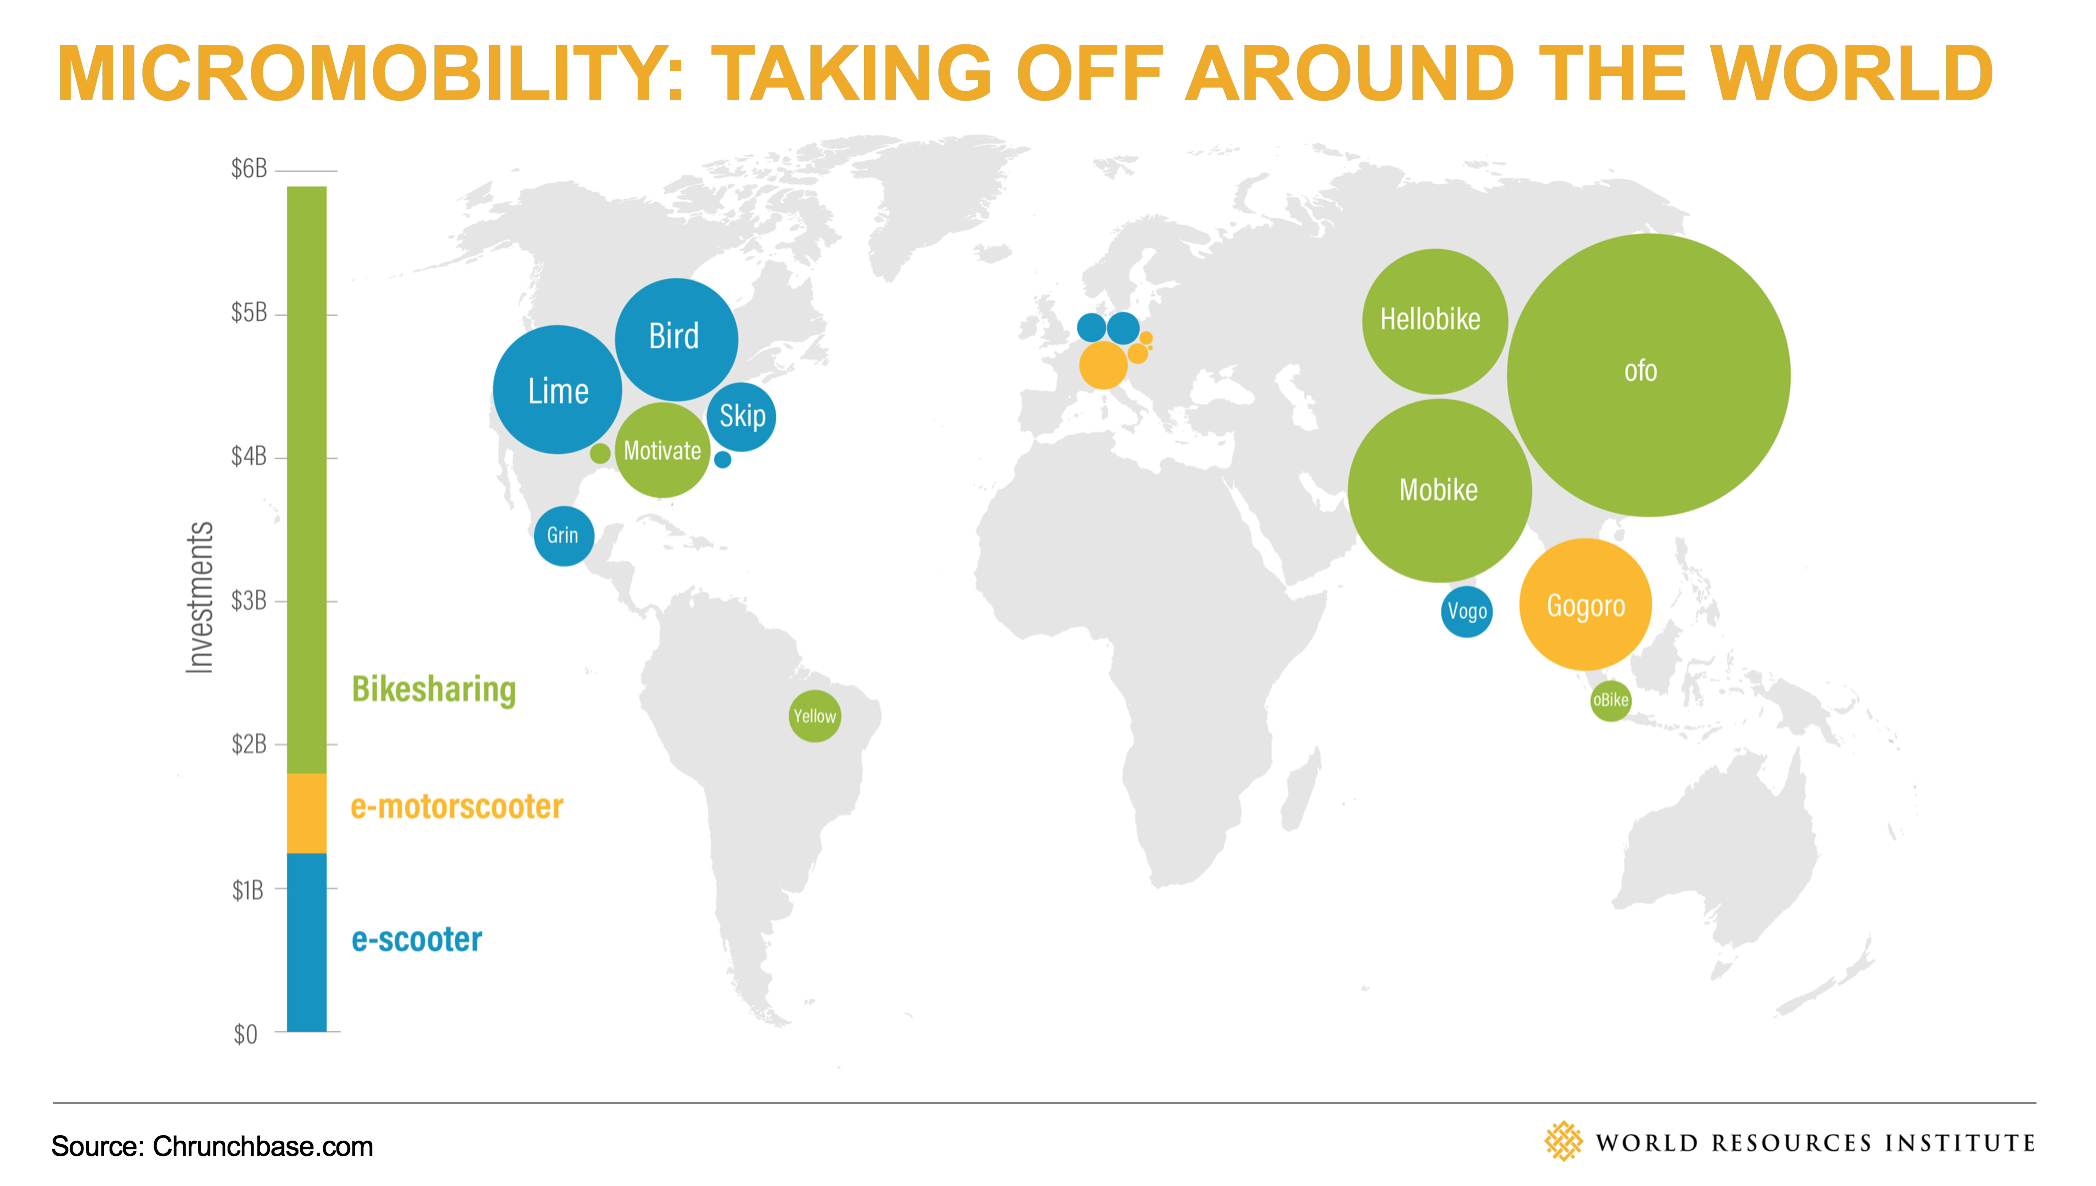 Micromobility Taking Off Around the World